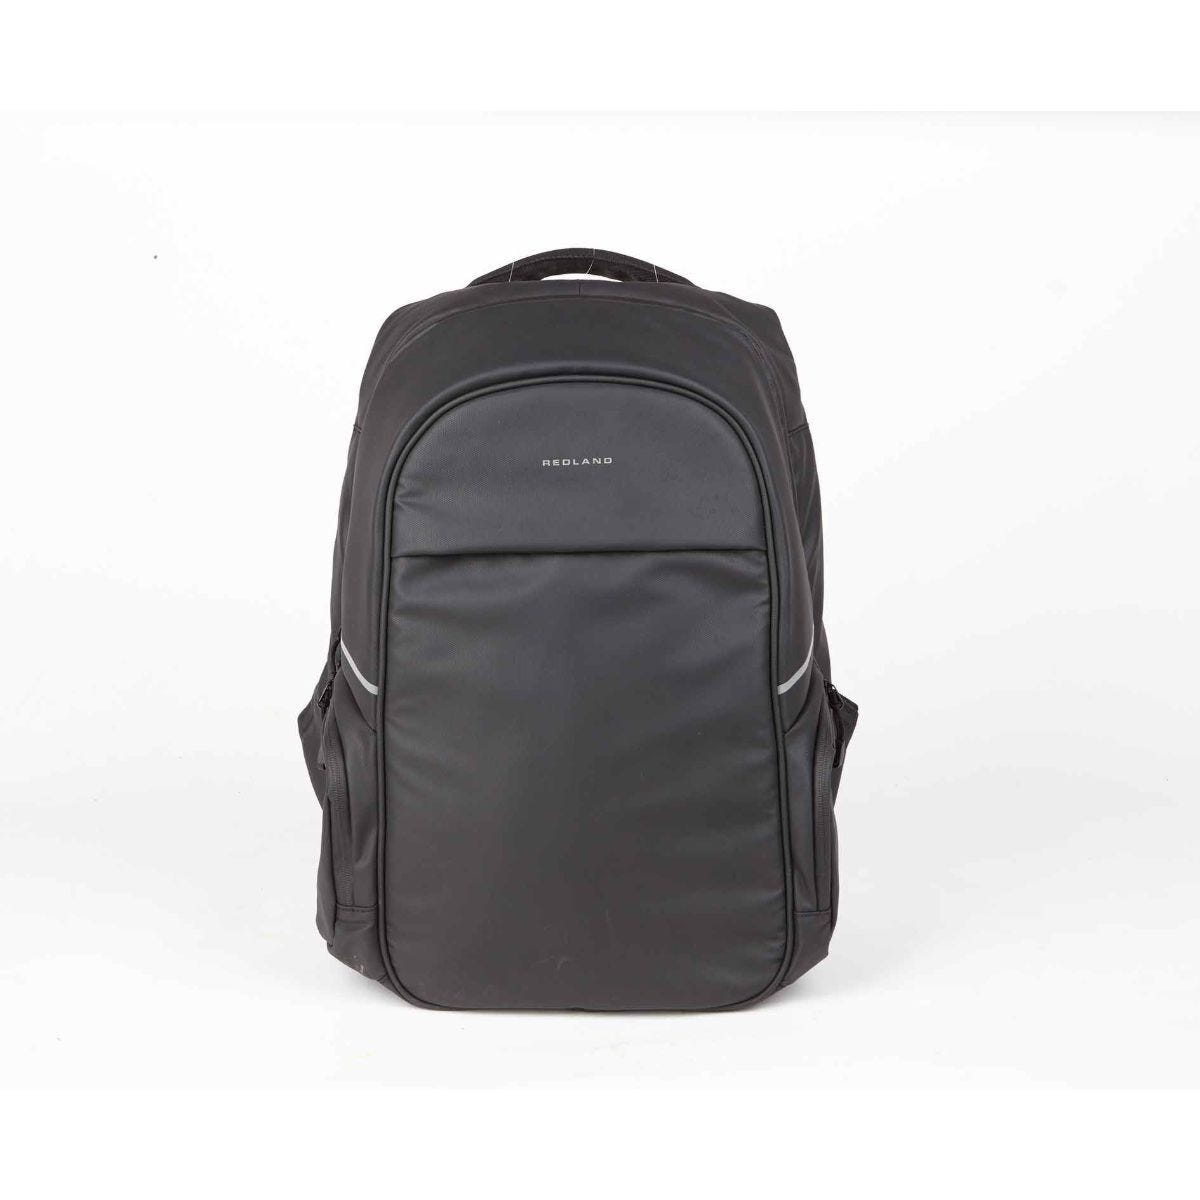 Redland Laptop Smart Backpack with Charging Pack Black